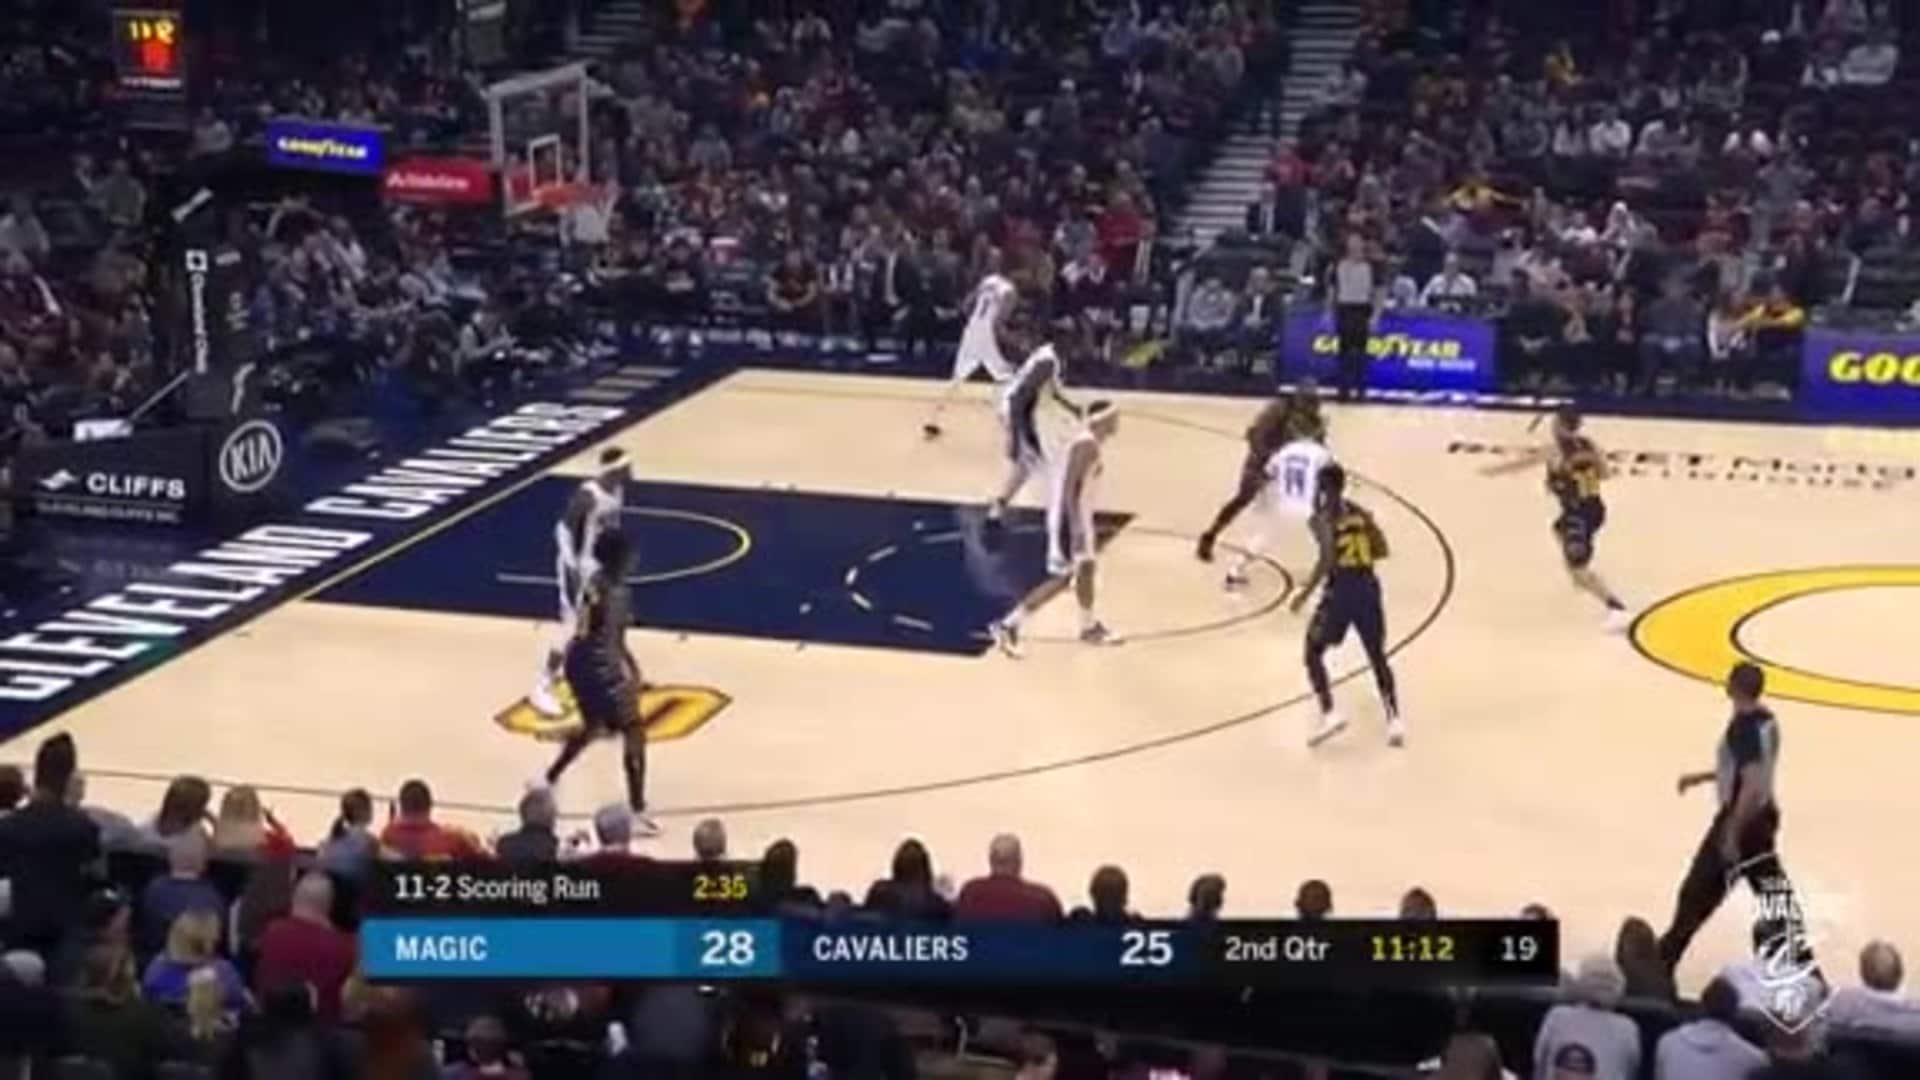 Delly Throws it Up, TT Throws it Down